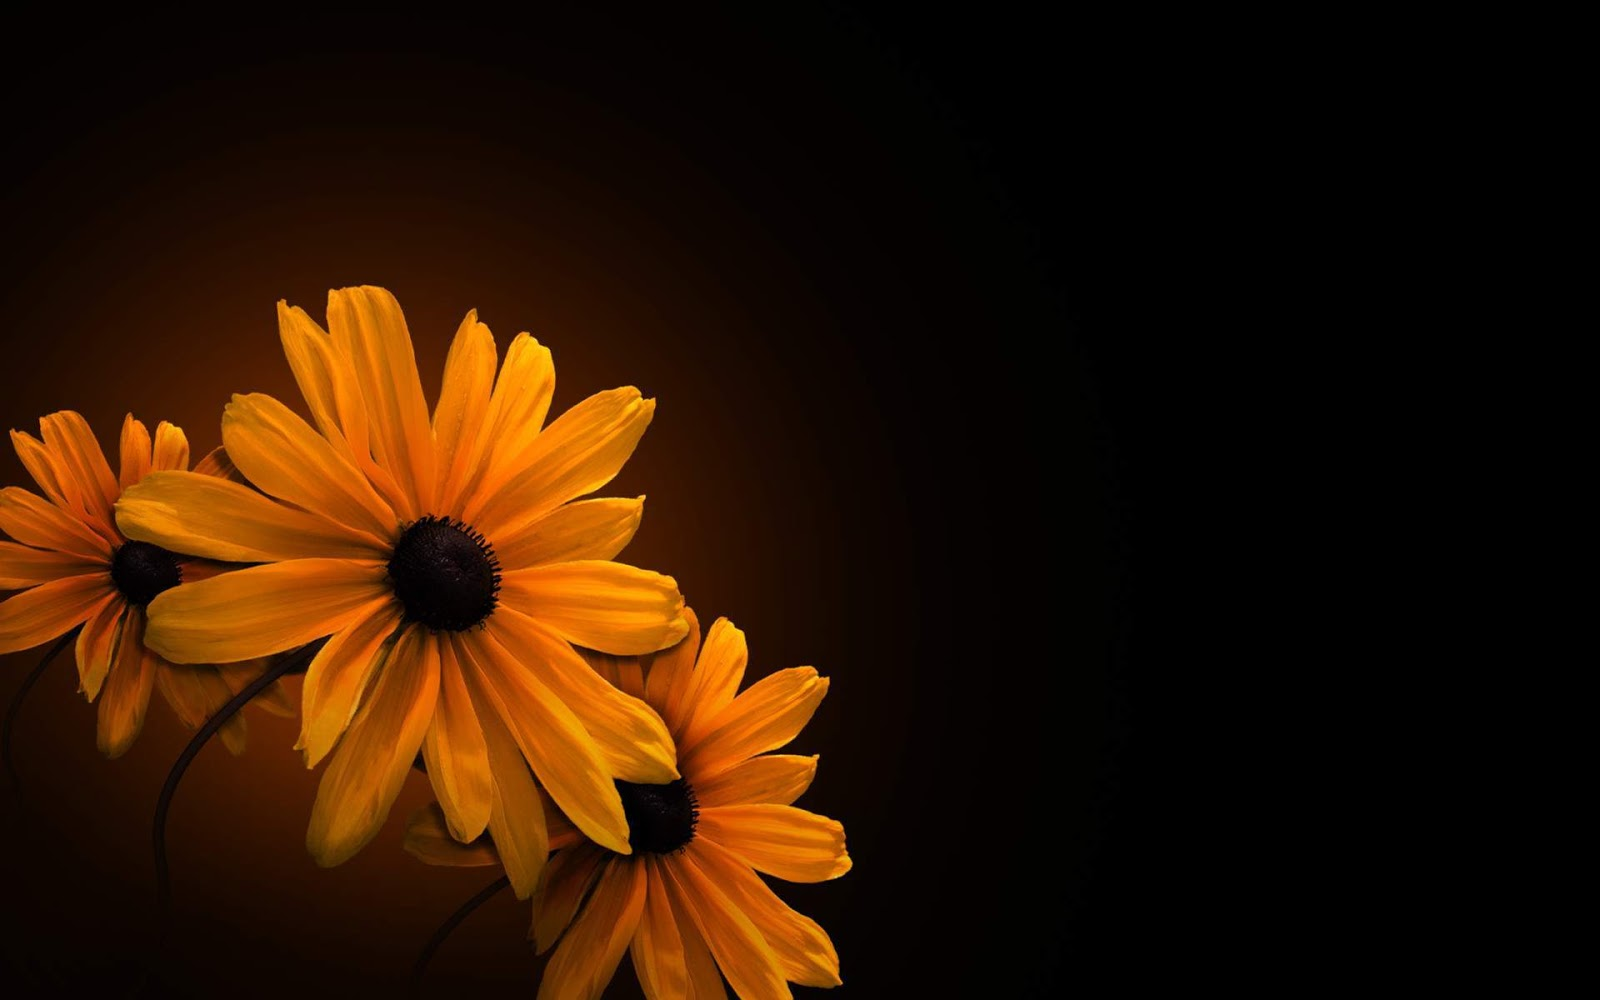 Orange Flower on Black Background Wallpaper HD 1600x1000